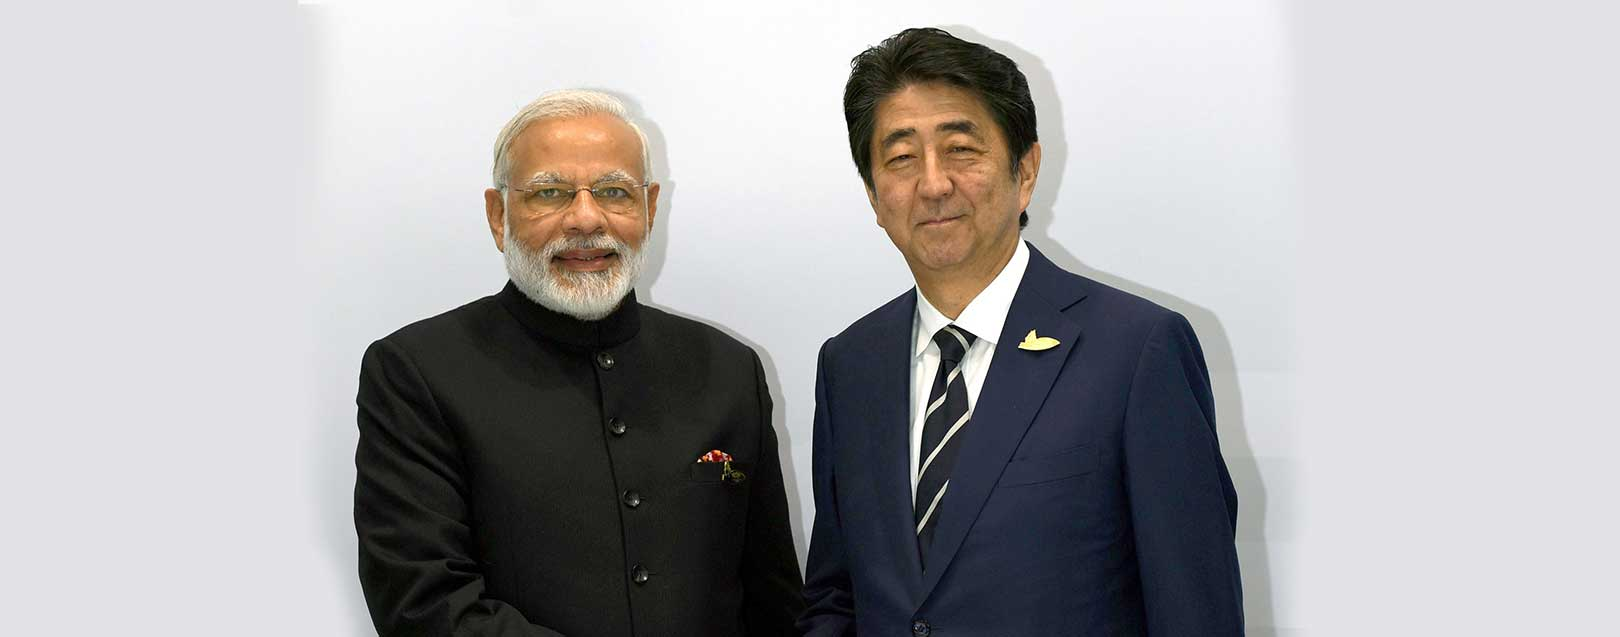 Japan lays strong emphasis on strengthening trade ties with India